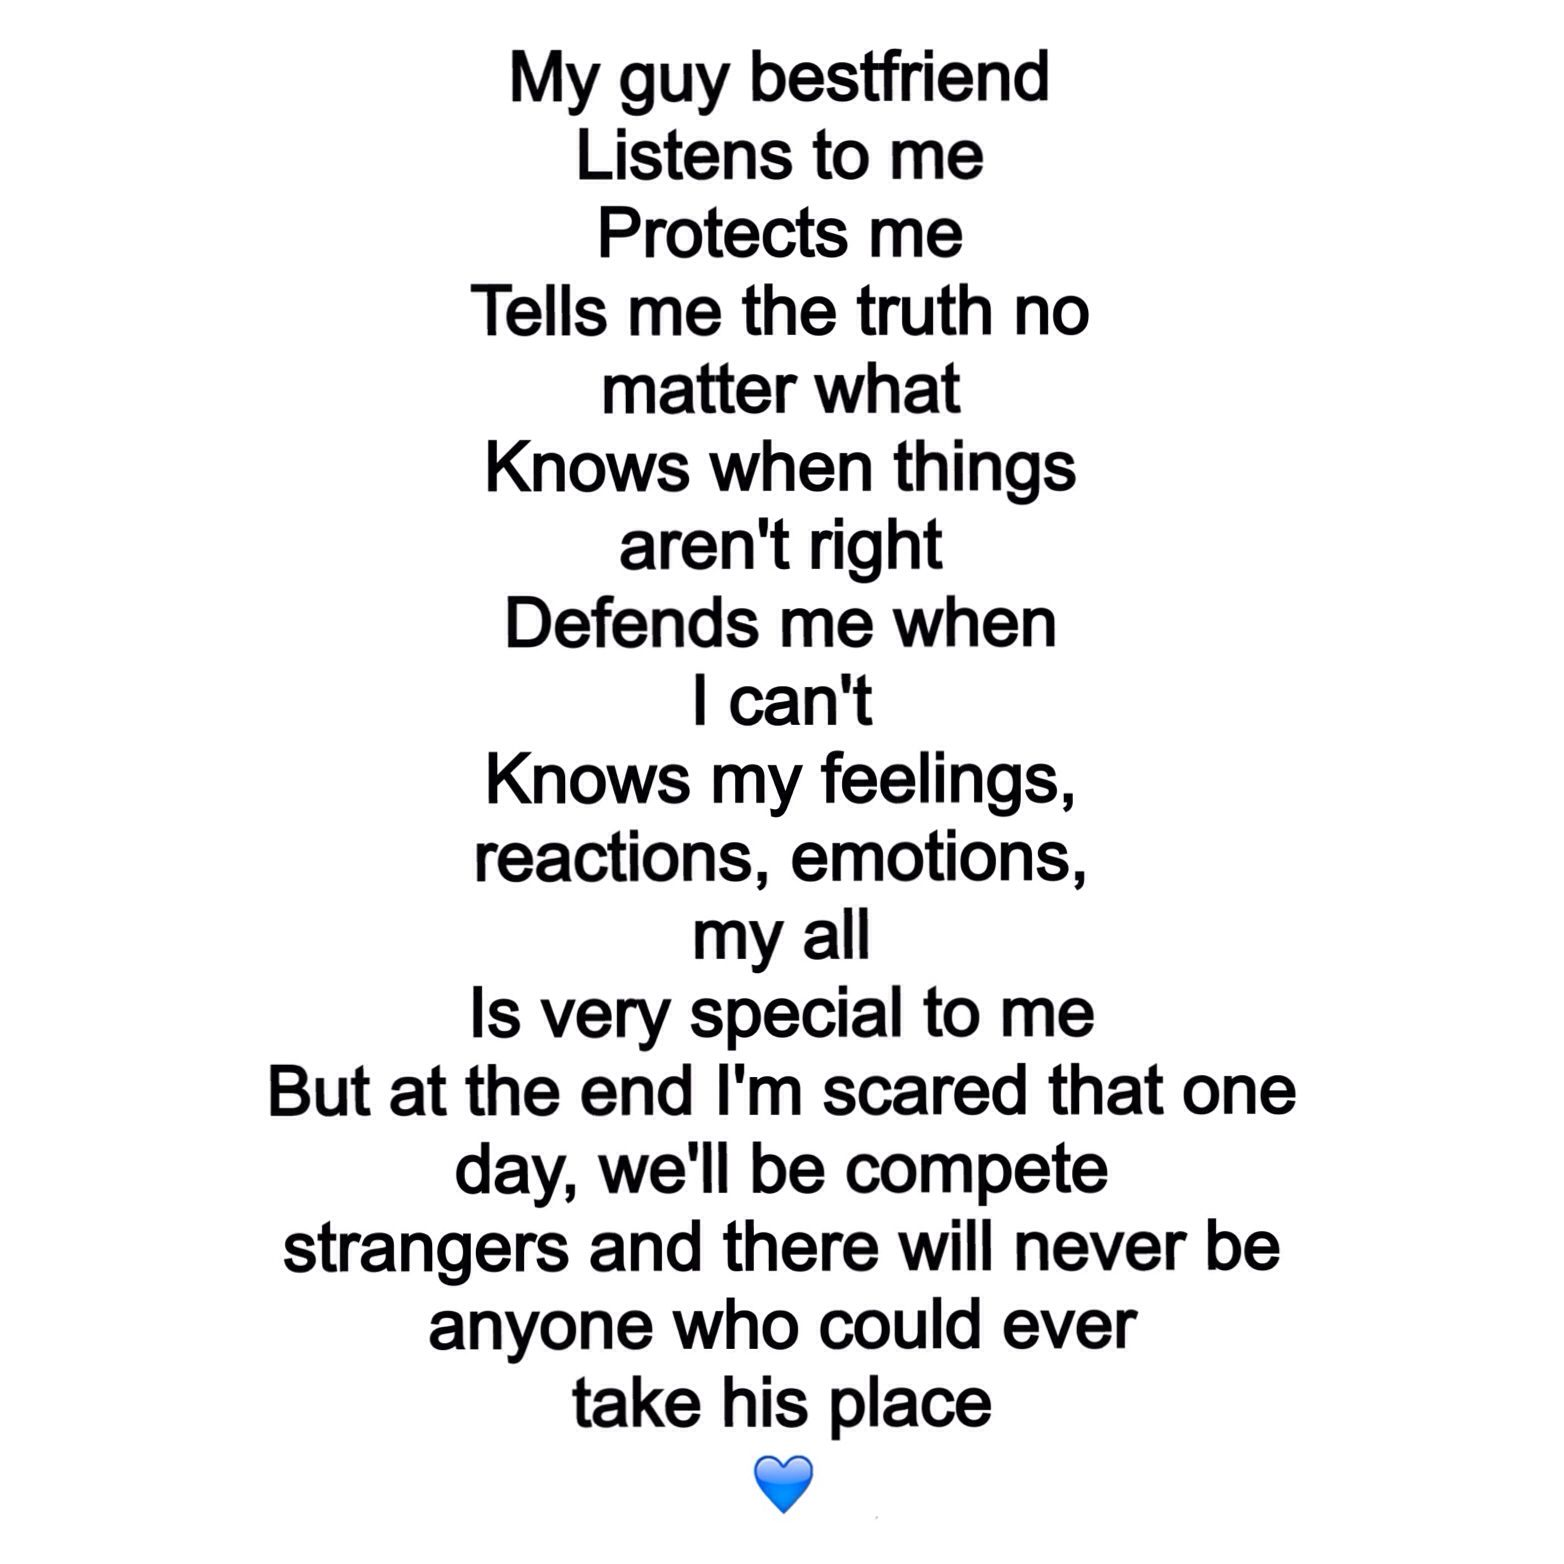 My Guy Best Friend Found This And I Love It Describes Him Perfectly